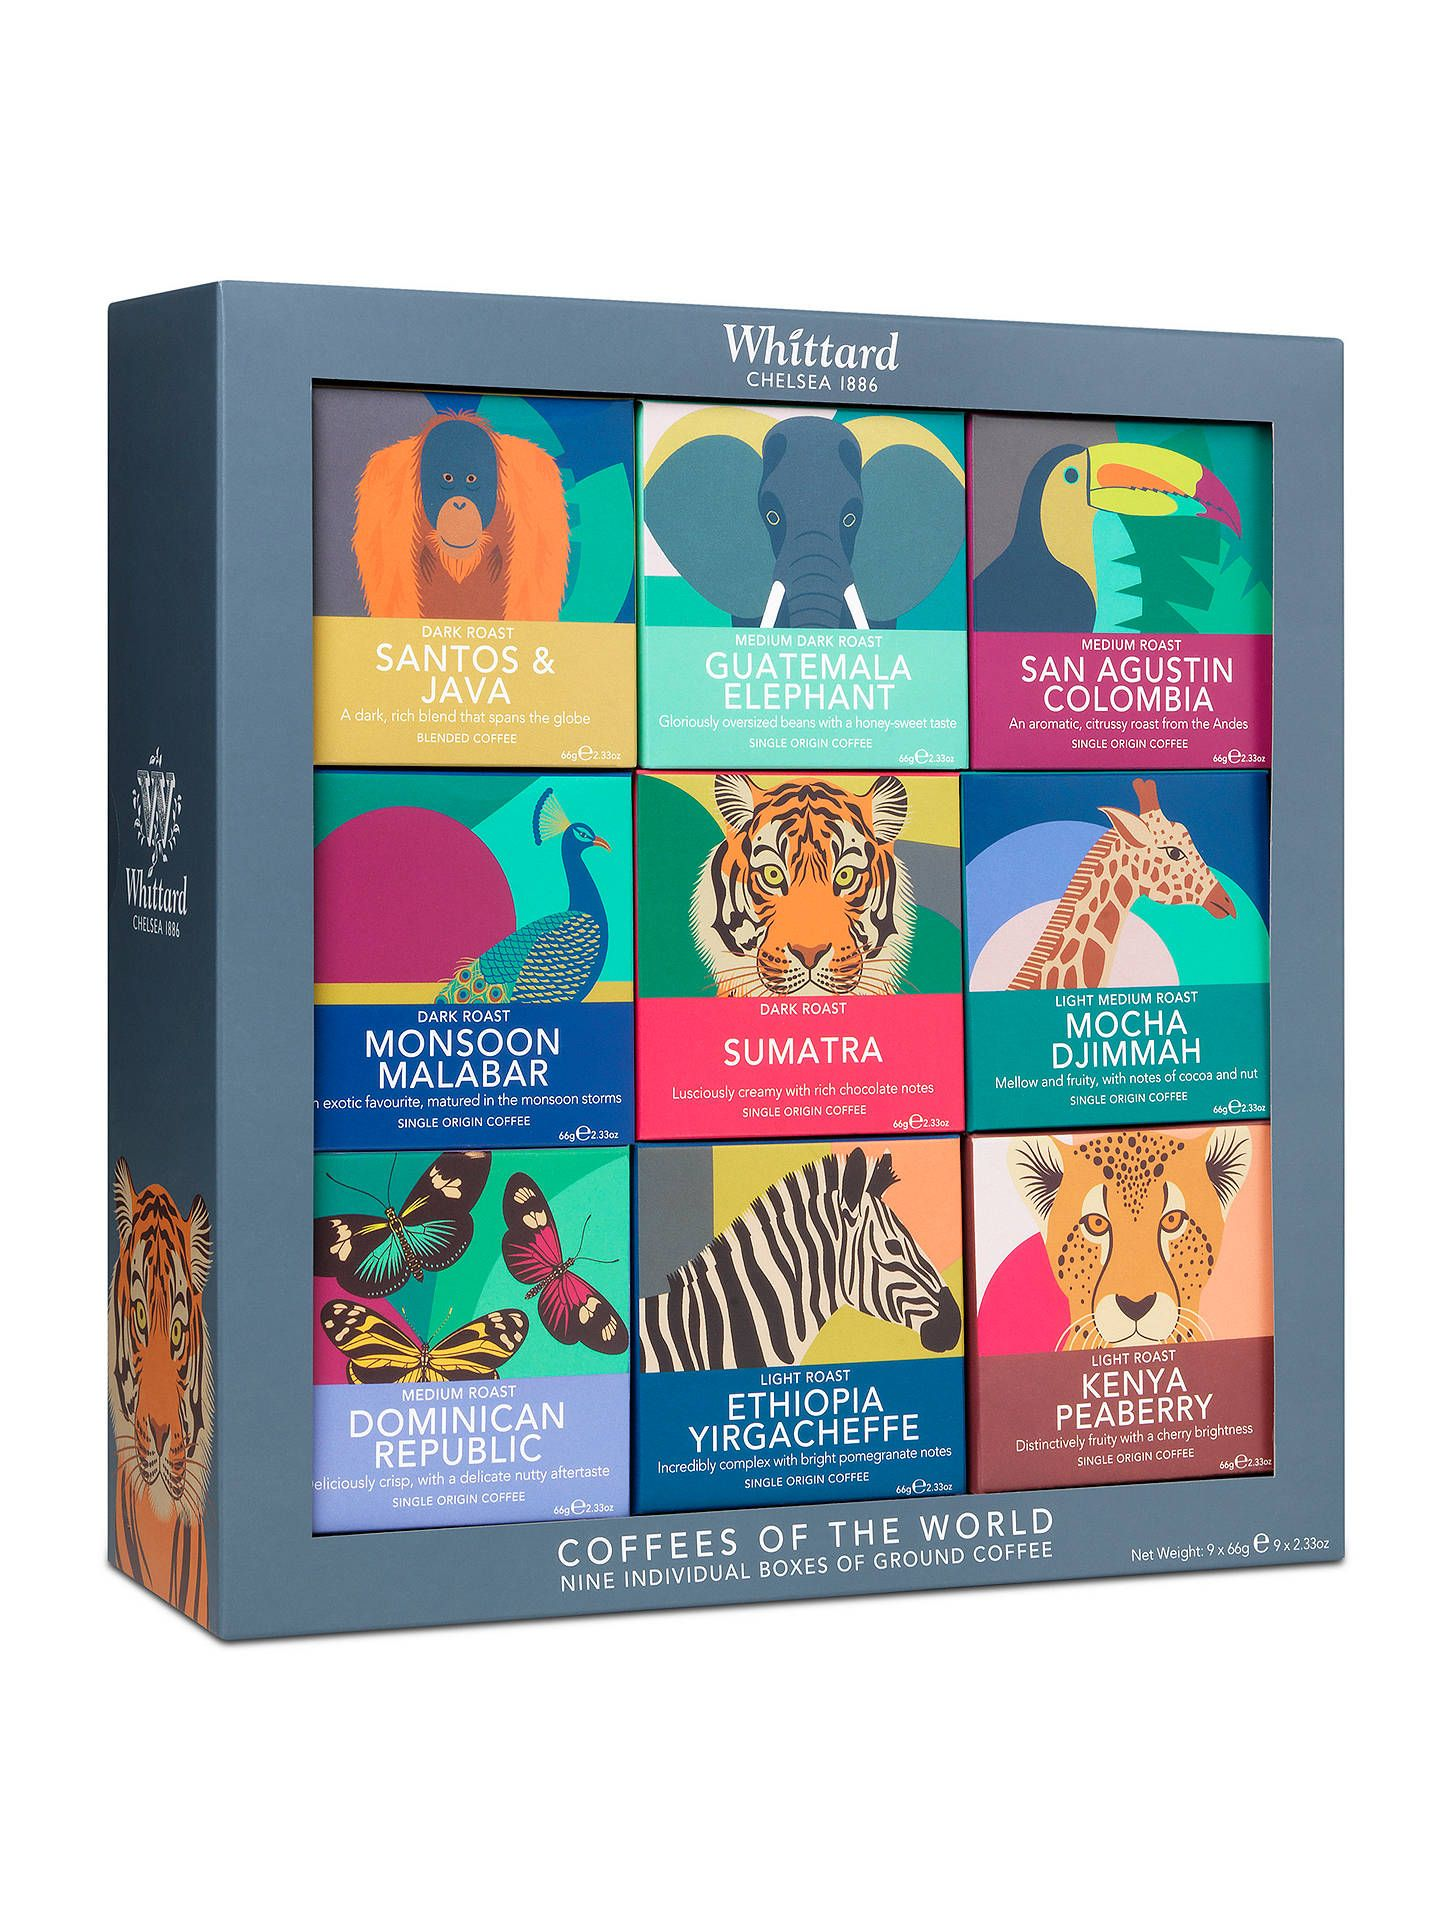 Whittard Coffees of the World, 594g Coffee gift sets